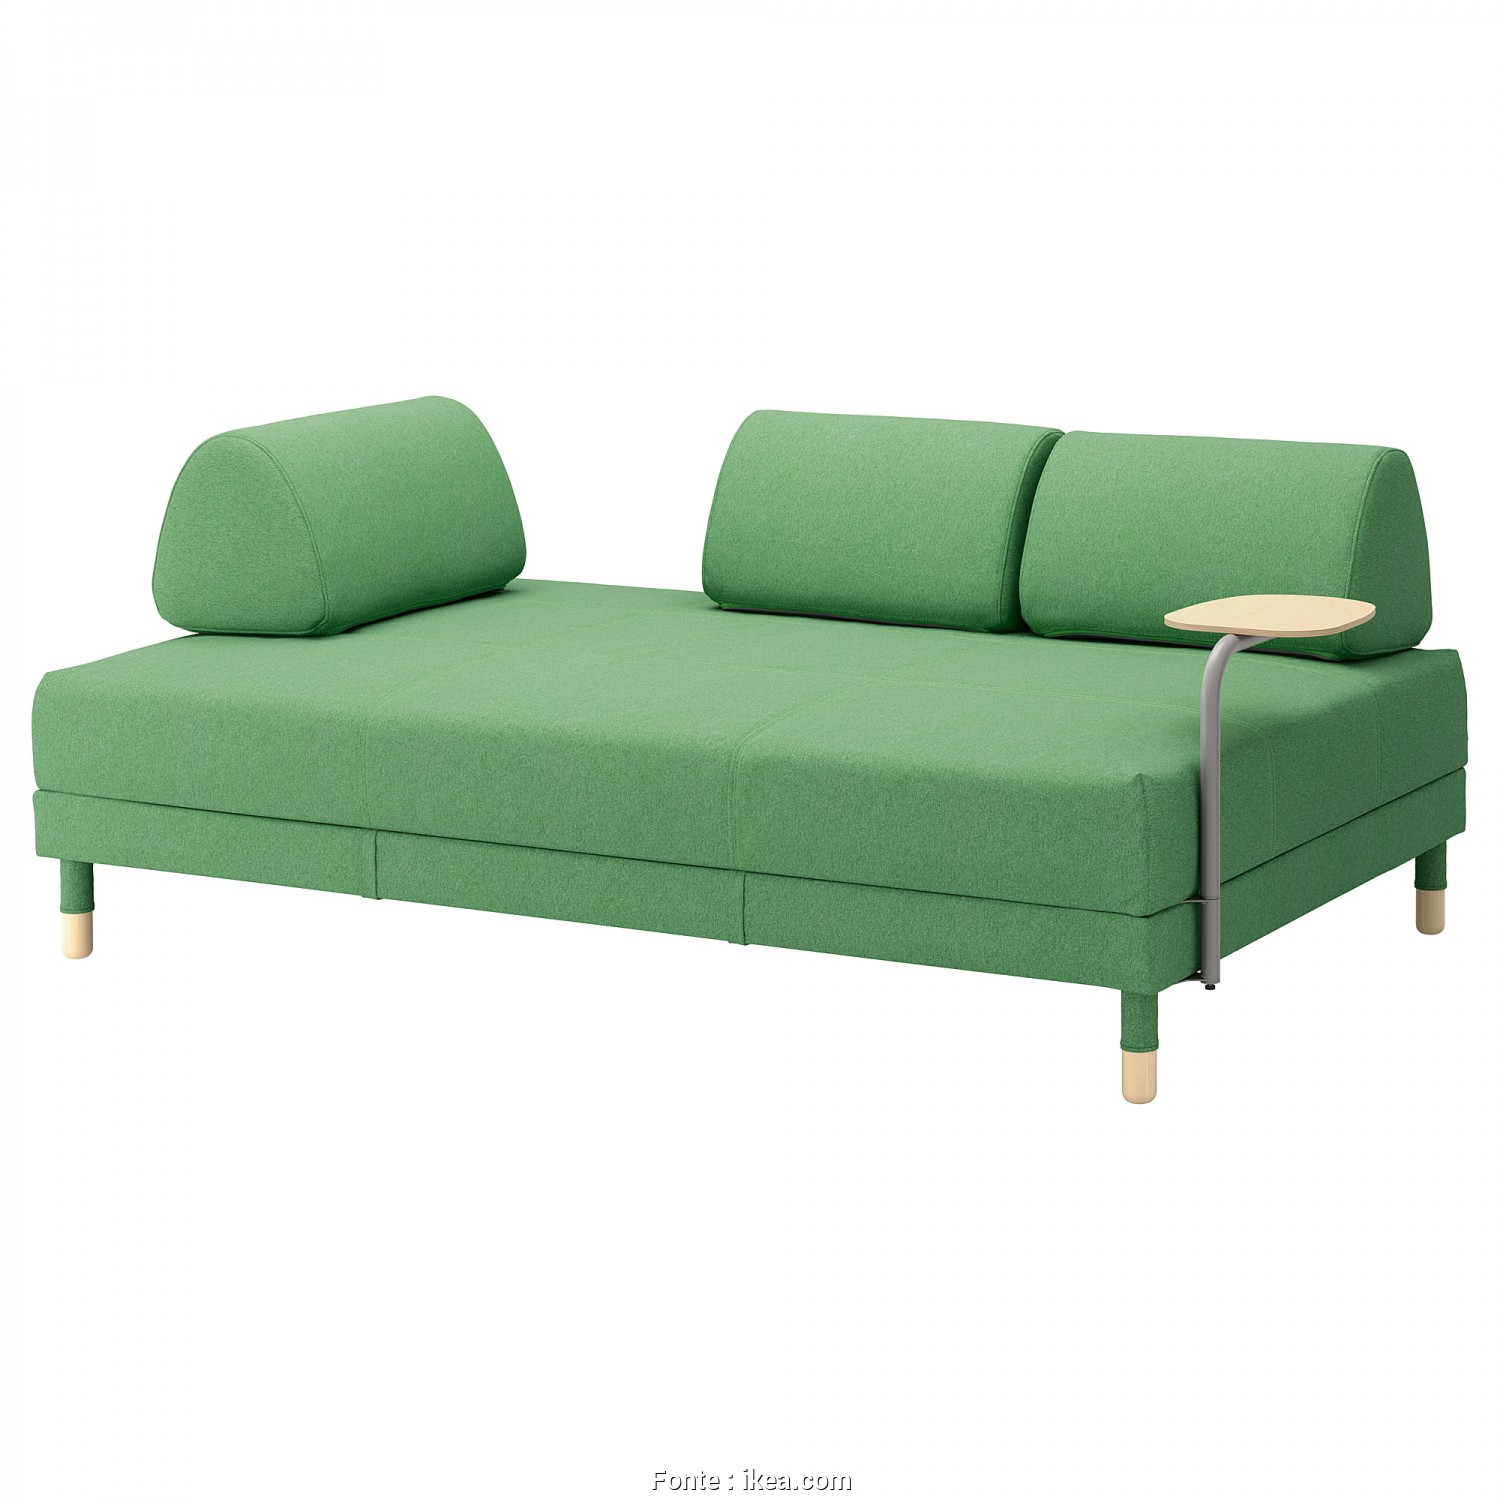 Futon Ikea Cadiz, Favoloso Inter IKEA Systems B.V. 1999, 2018, Privacy Policy, Responsible Disclosure